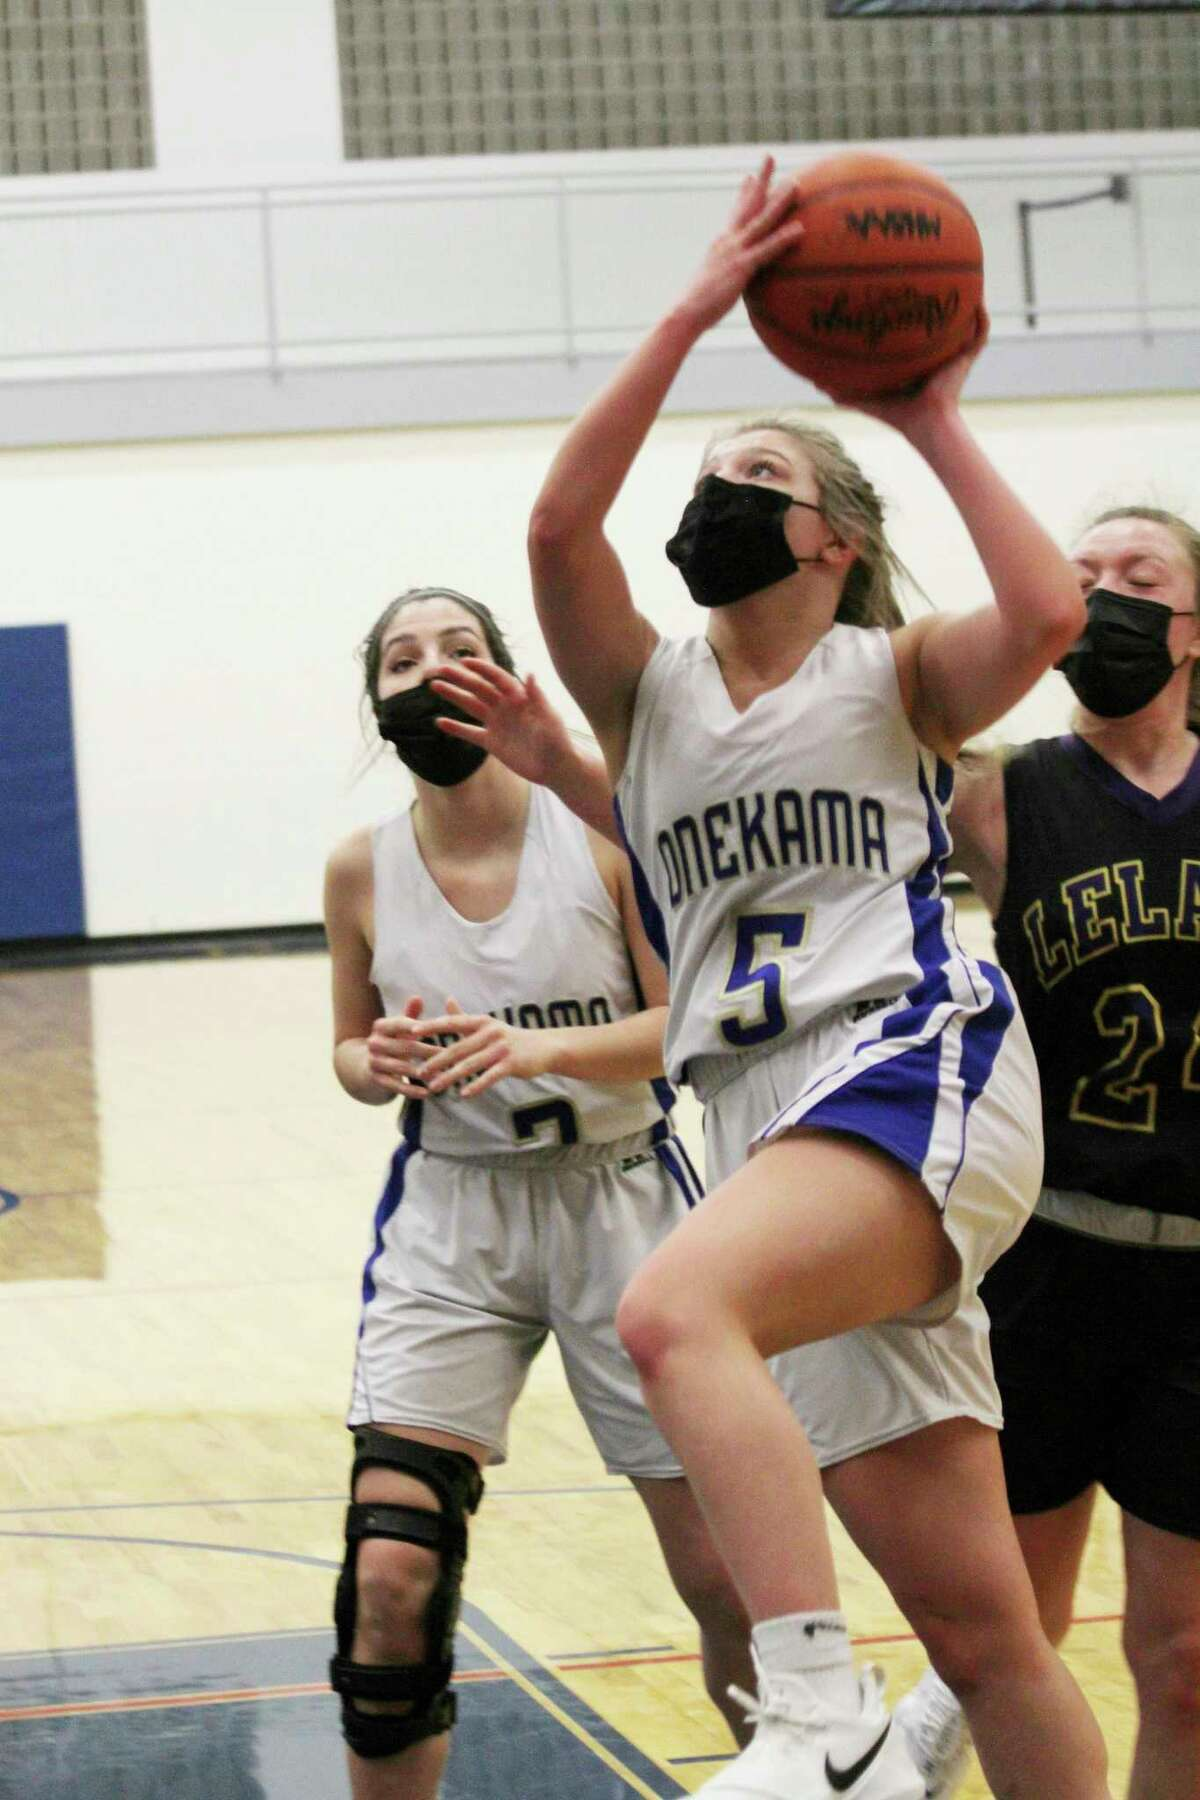 Onekama's Ajah Fink received the Outstanding Senior Student Athlete Award by the Basketball Coaches Association of Michigan. (News Advocate file photo)